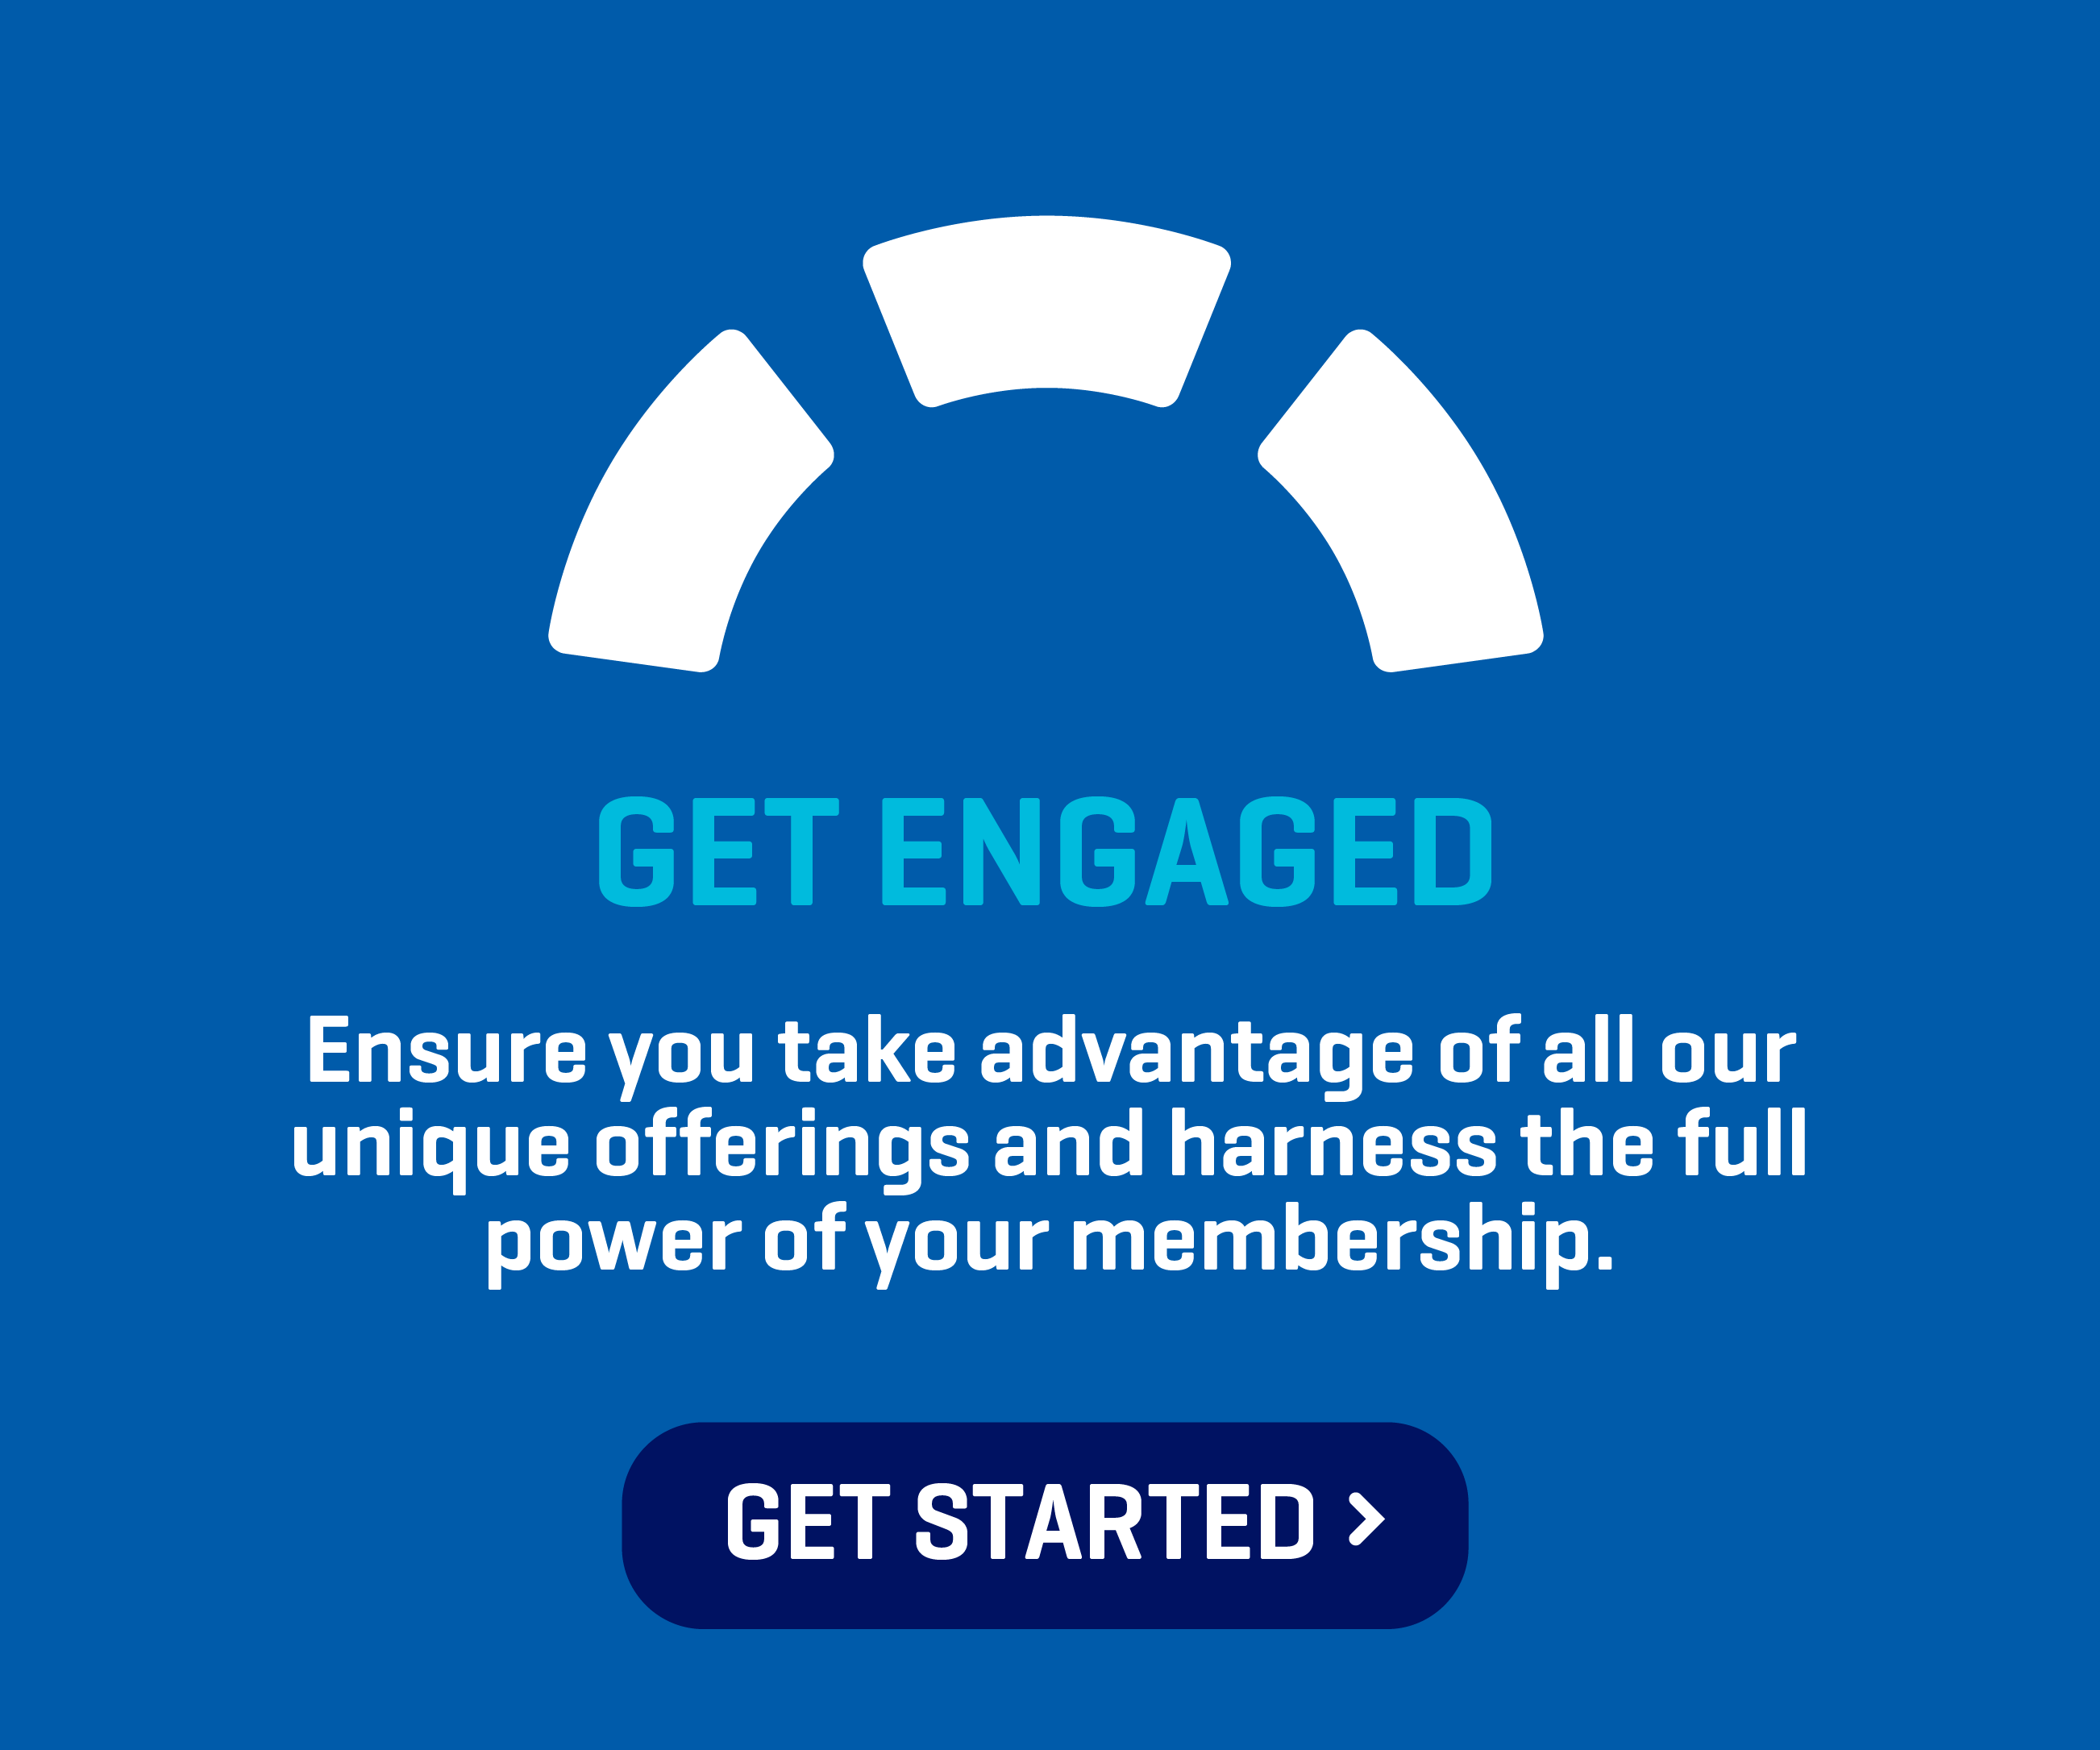 Get Engaged With Your Membership